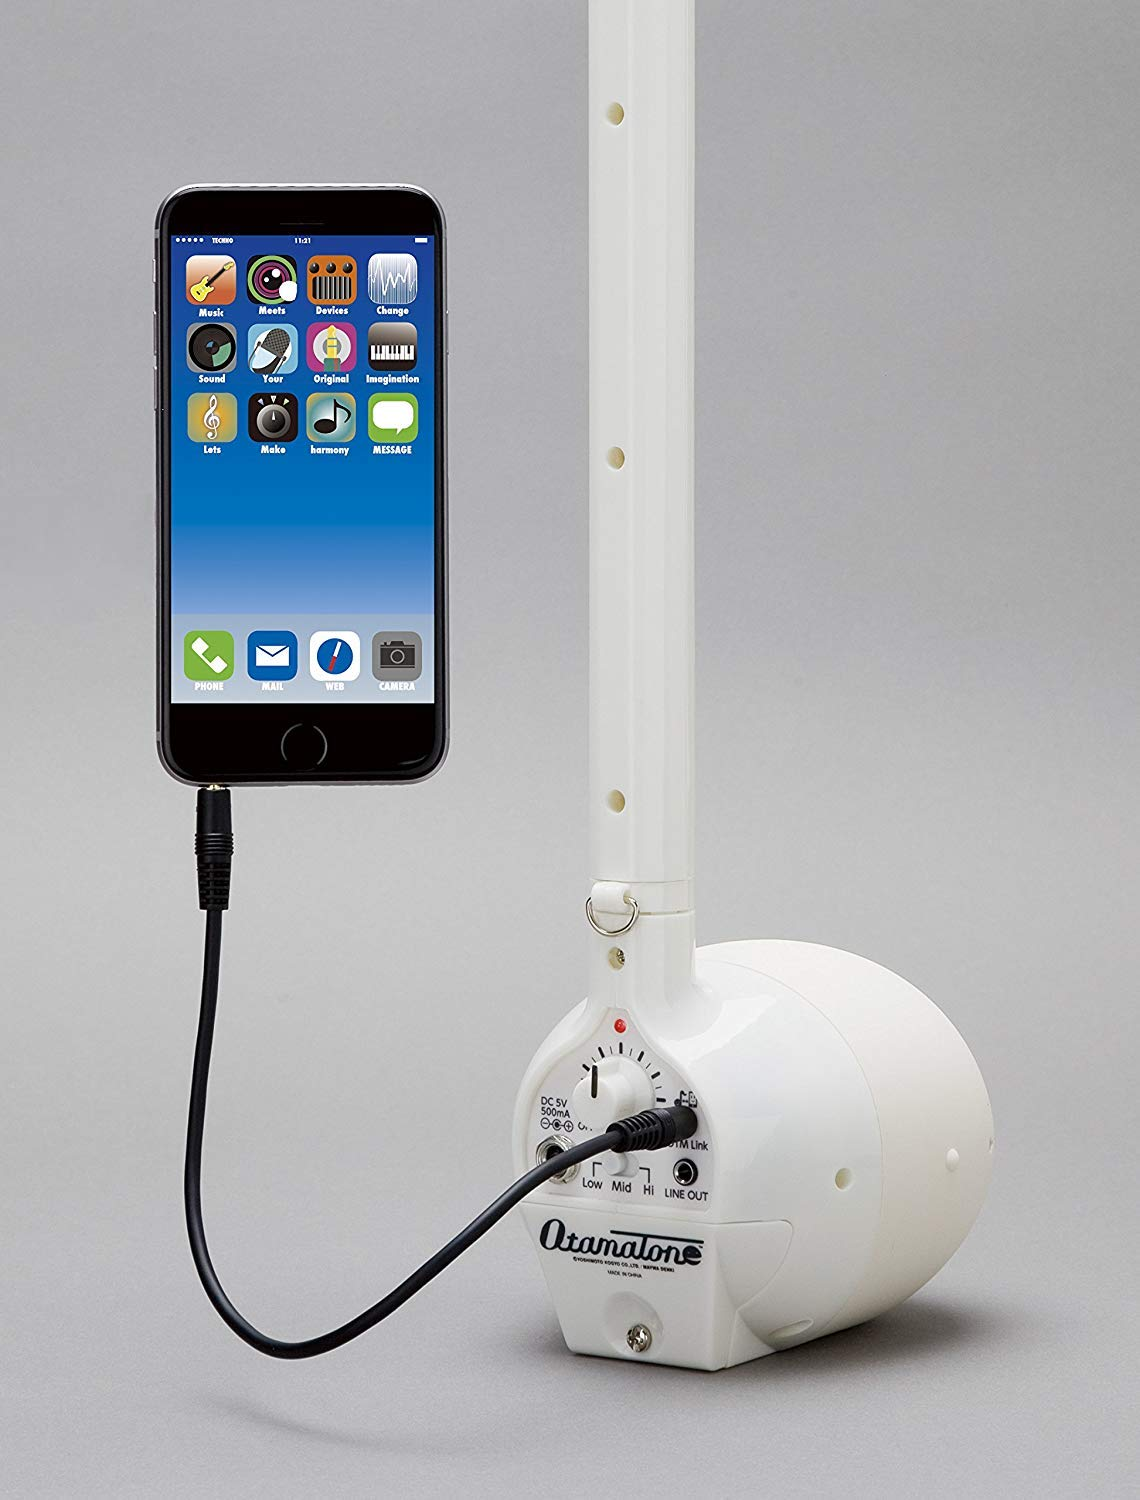 Otamatone ''Techno'' [Japanese Edition] Electronic Musical Instrument Synthesizer [Music Link connect] with a smartphone (iPhone and iPad iOS / Android App) from Japan by Cube / Maywa Denki, White by Otamatone (Image #4)